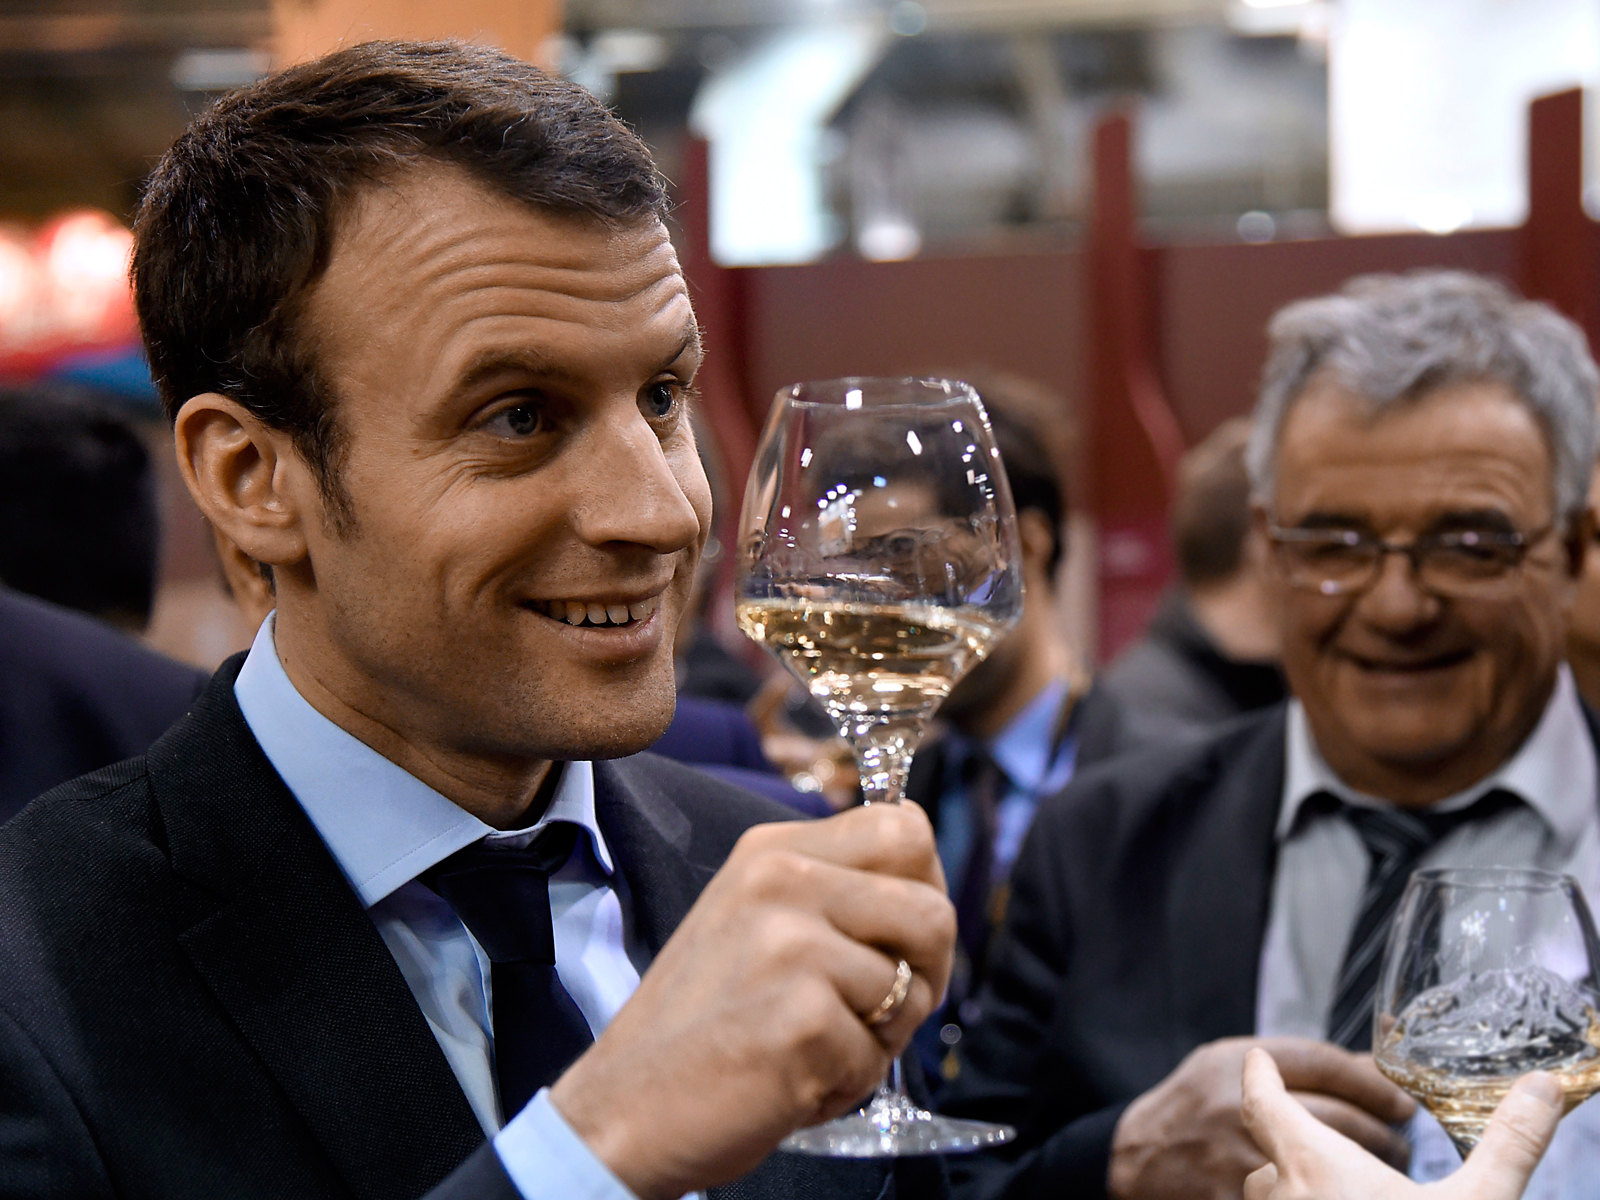 France's Emmanuel Macron Opened His Presidential Wine Cellar to the Public